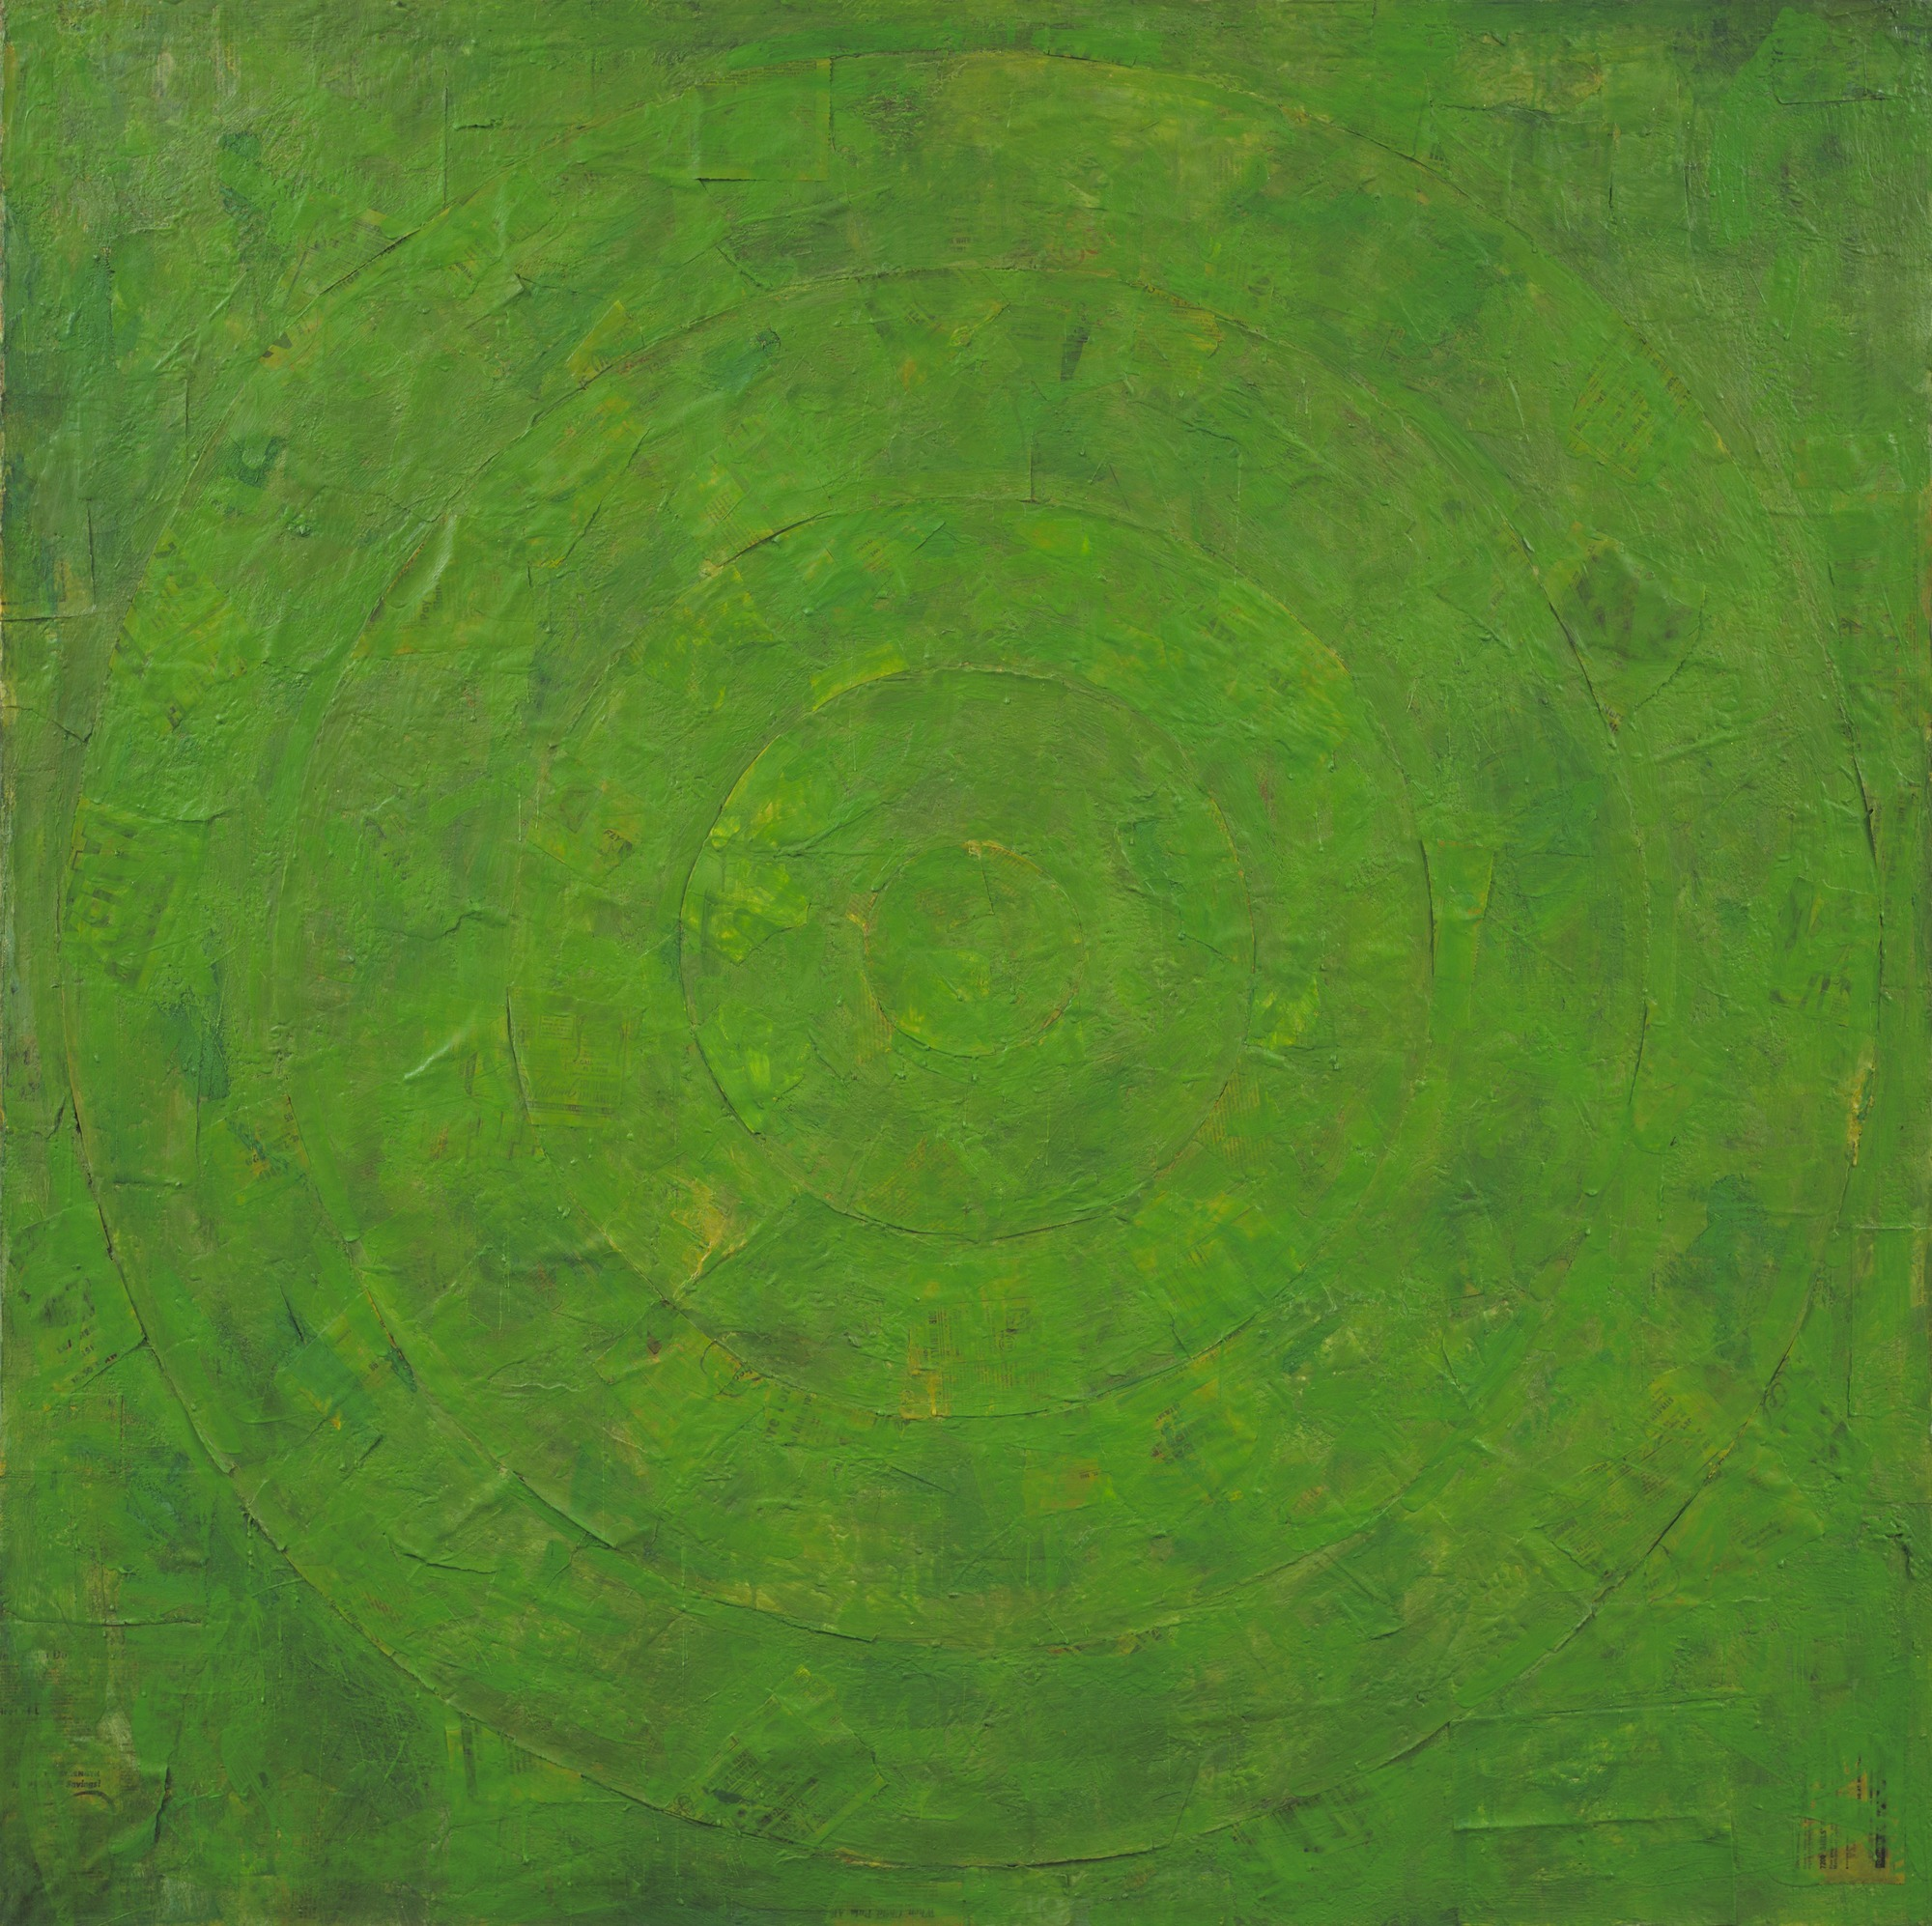 Copy of Jasper Johns - Green Target